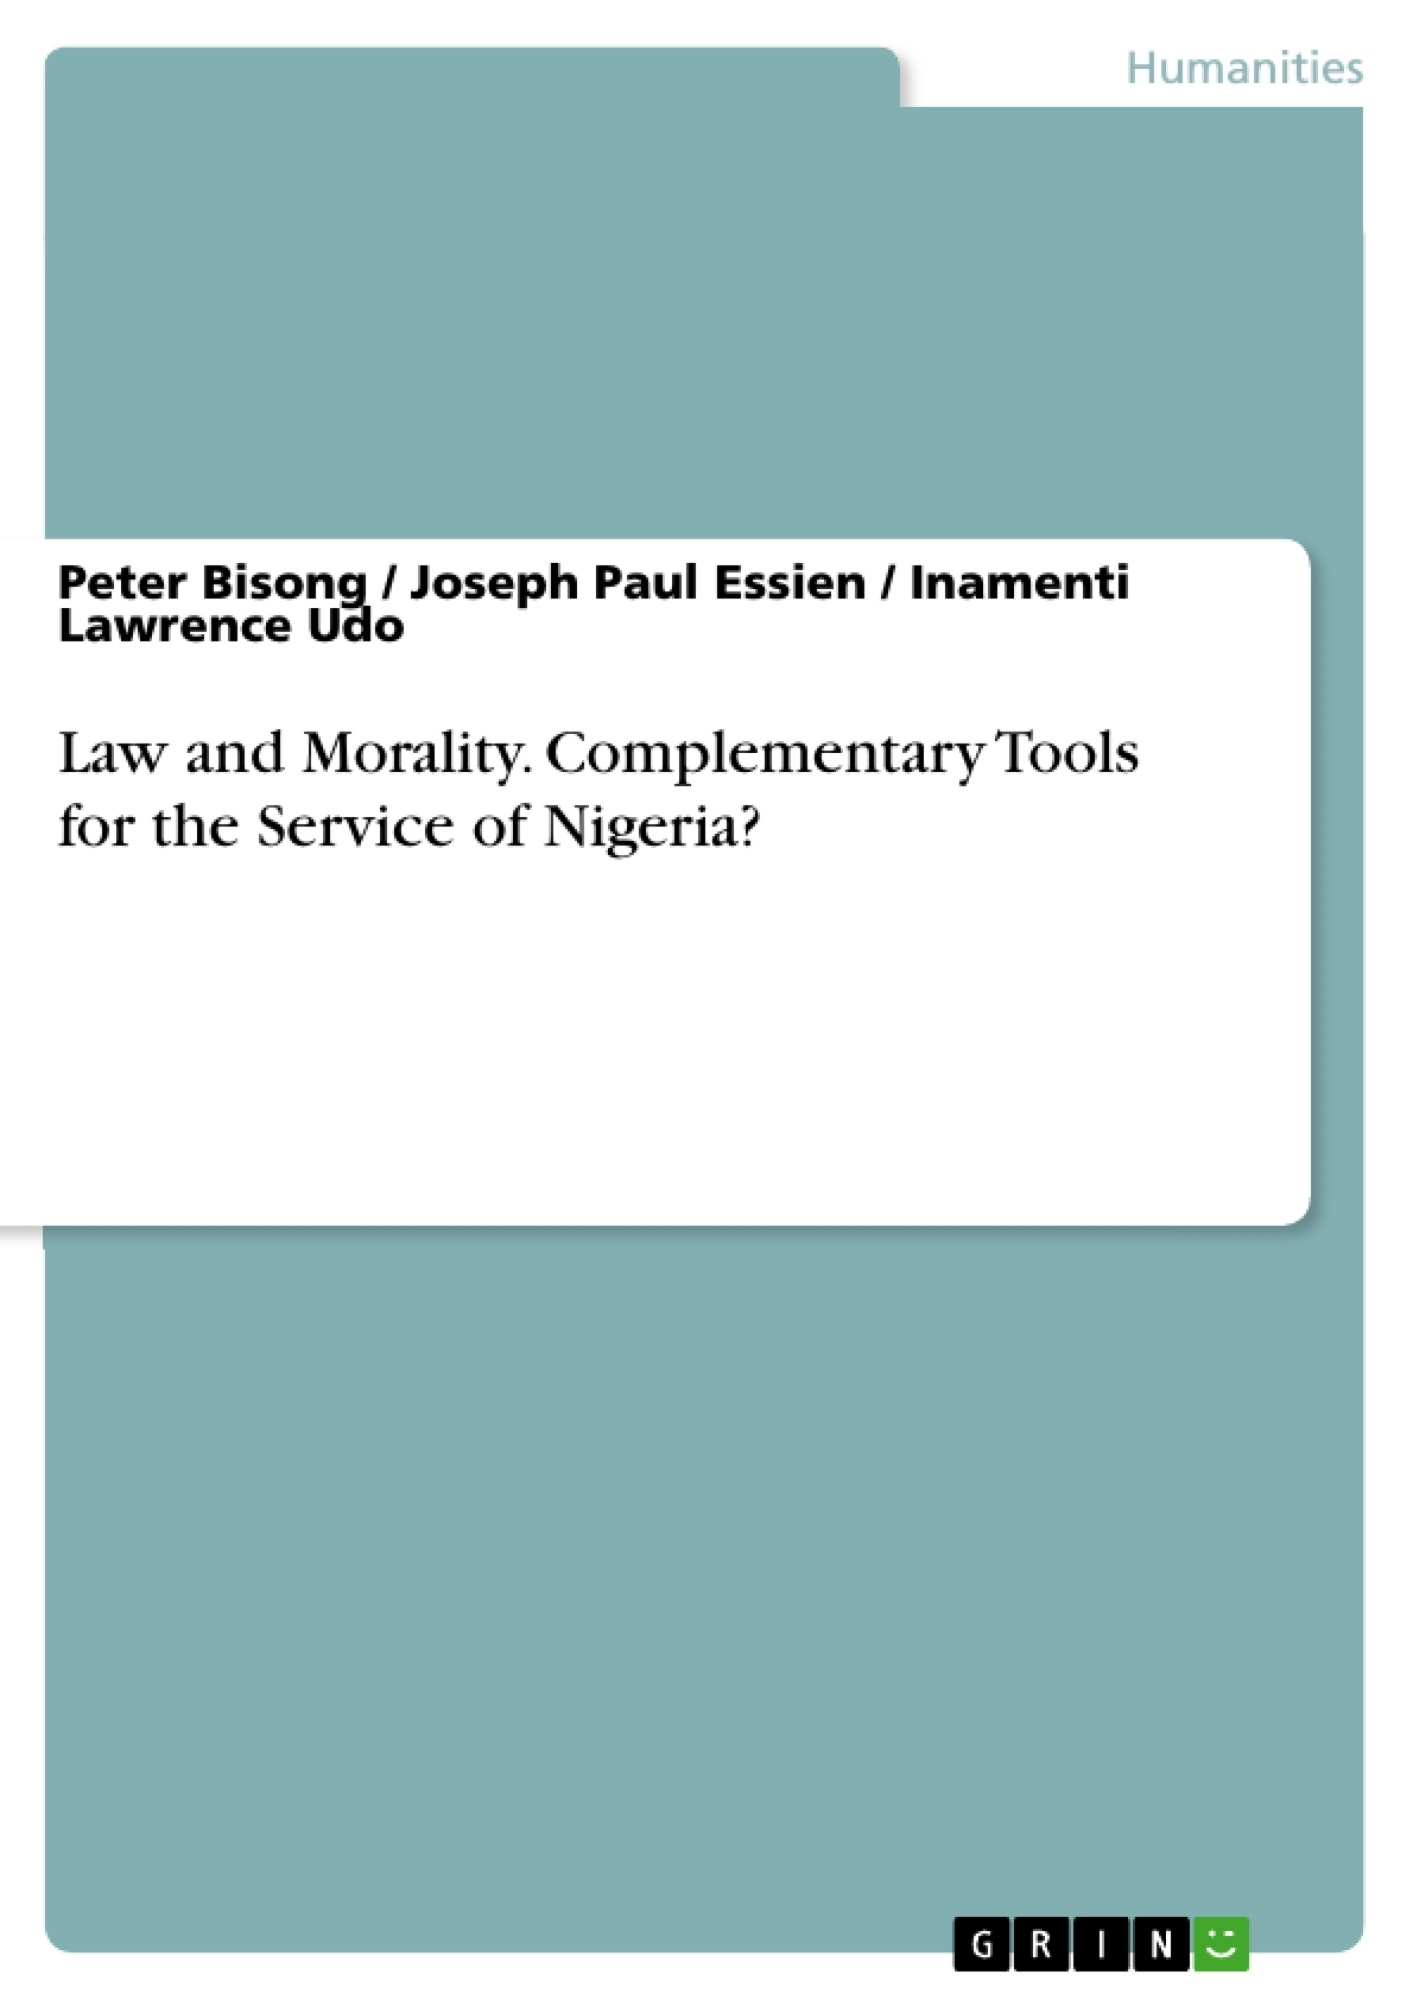 Title: Law and Morality. Complementary Tools for the Service of Nigeria?